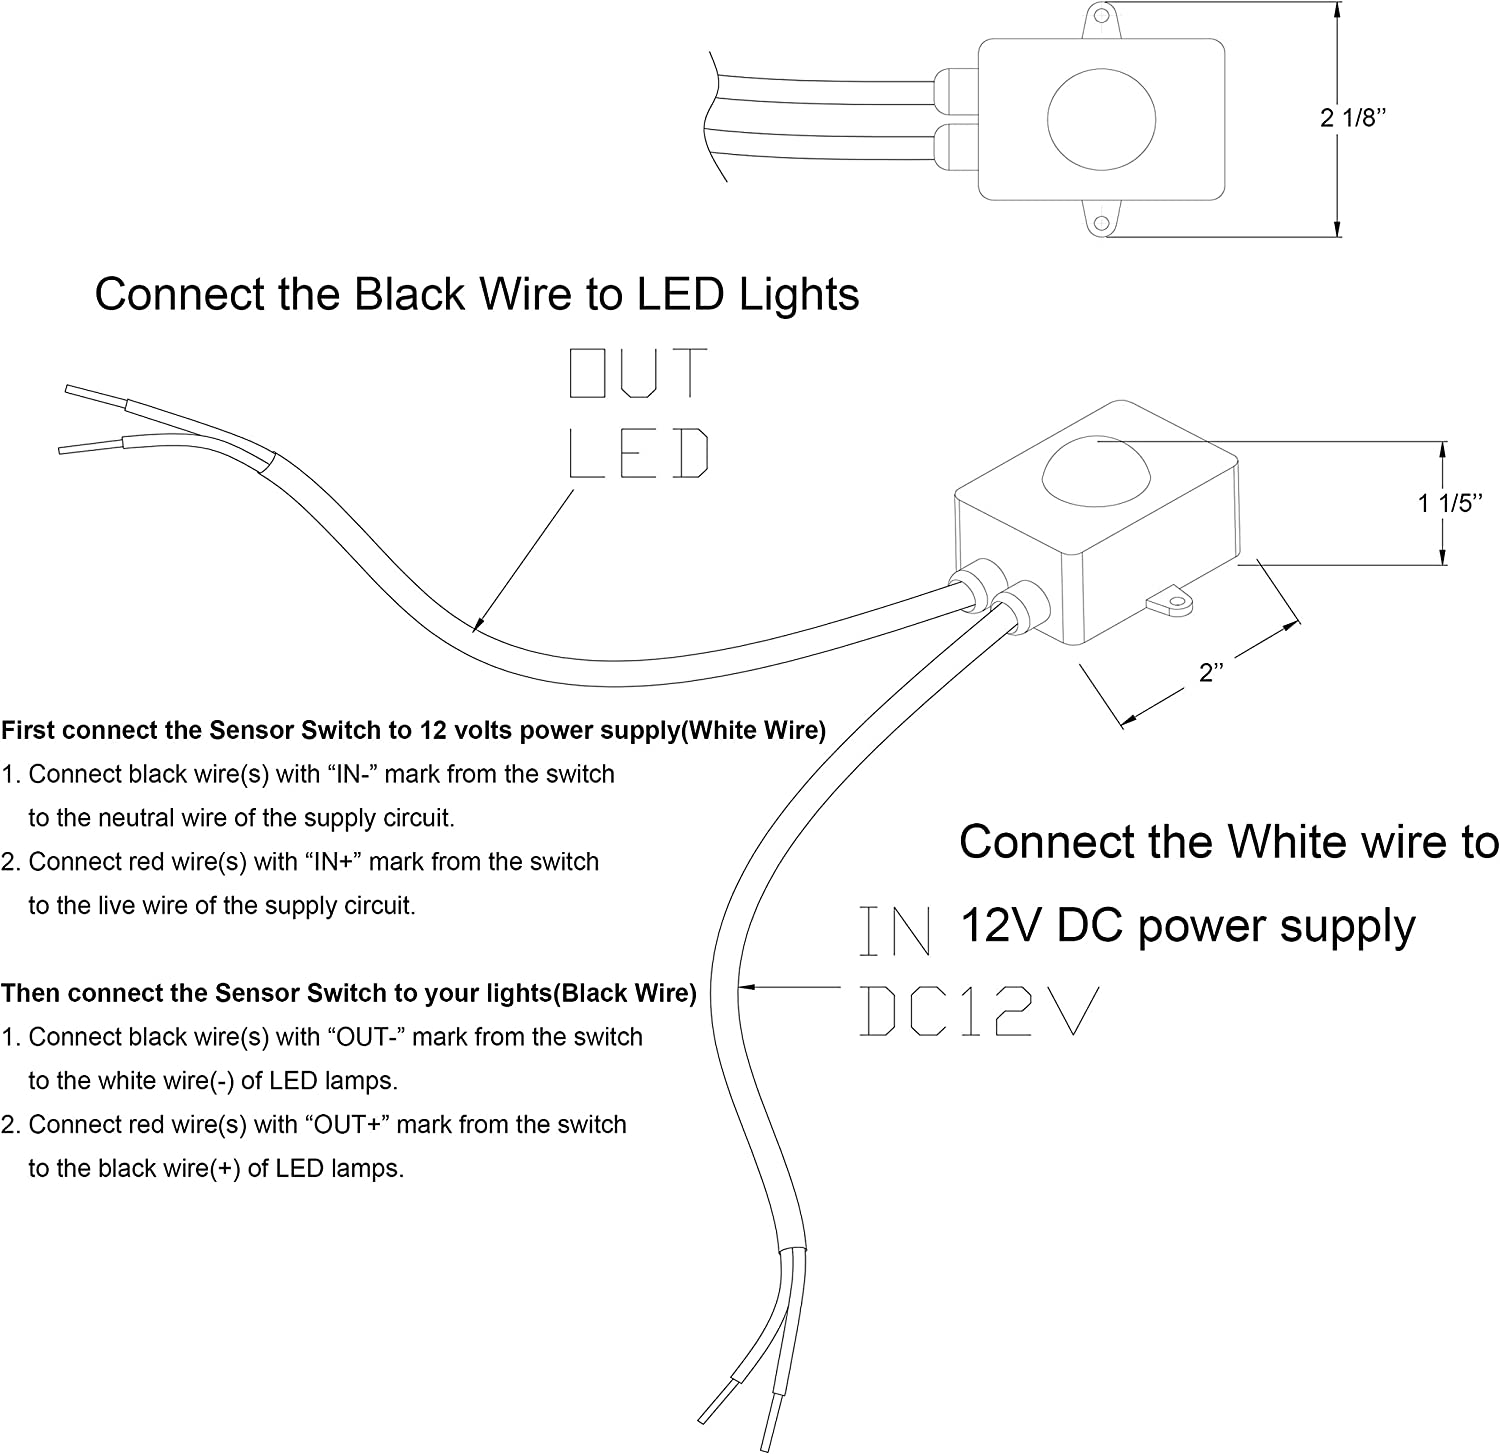 12 Volt Wiring Diagram For Lights from images-na.ssl-images-amazon.com